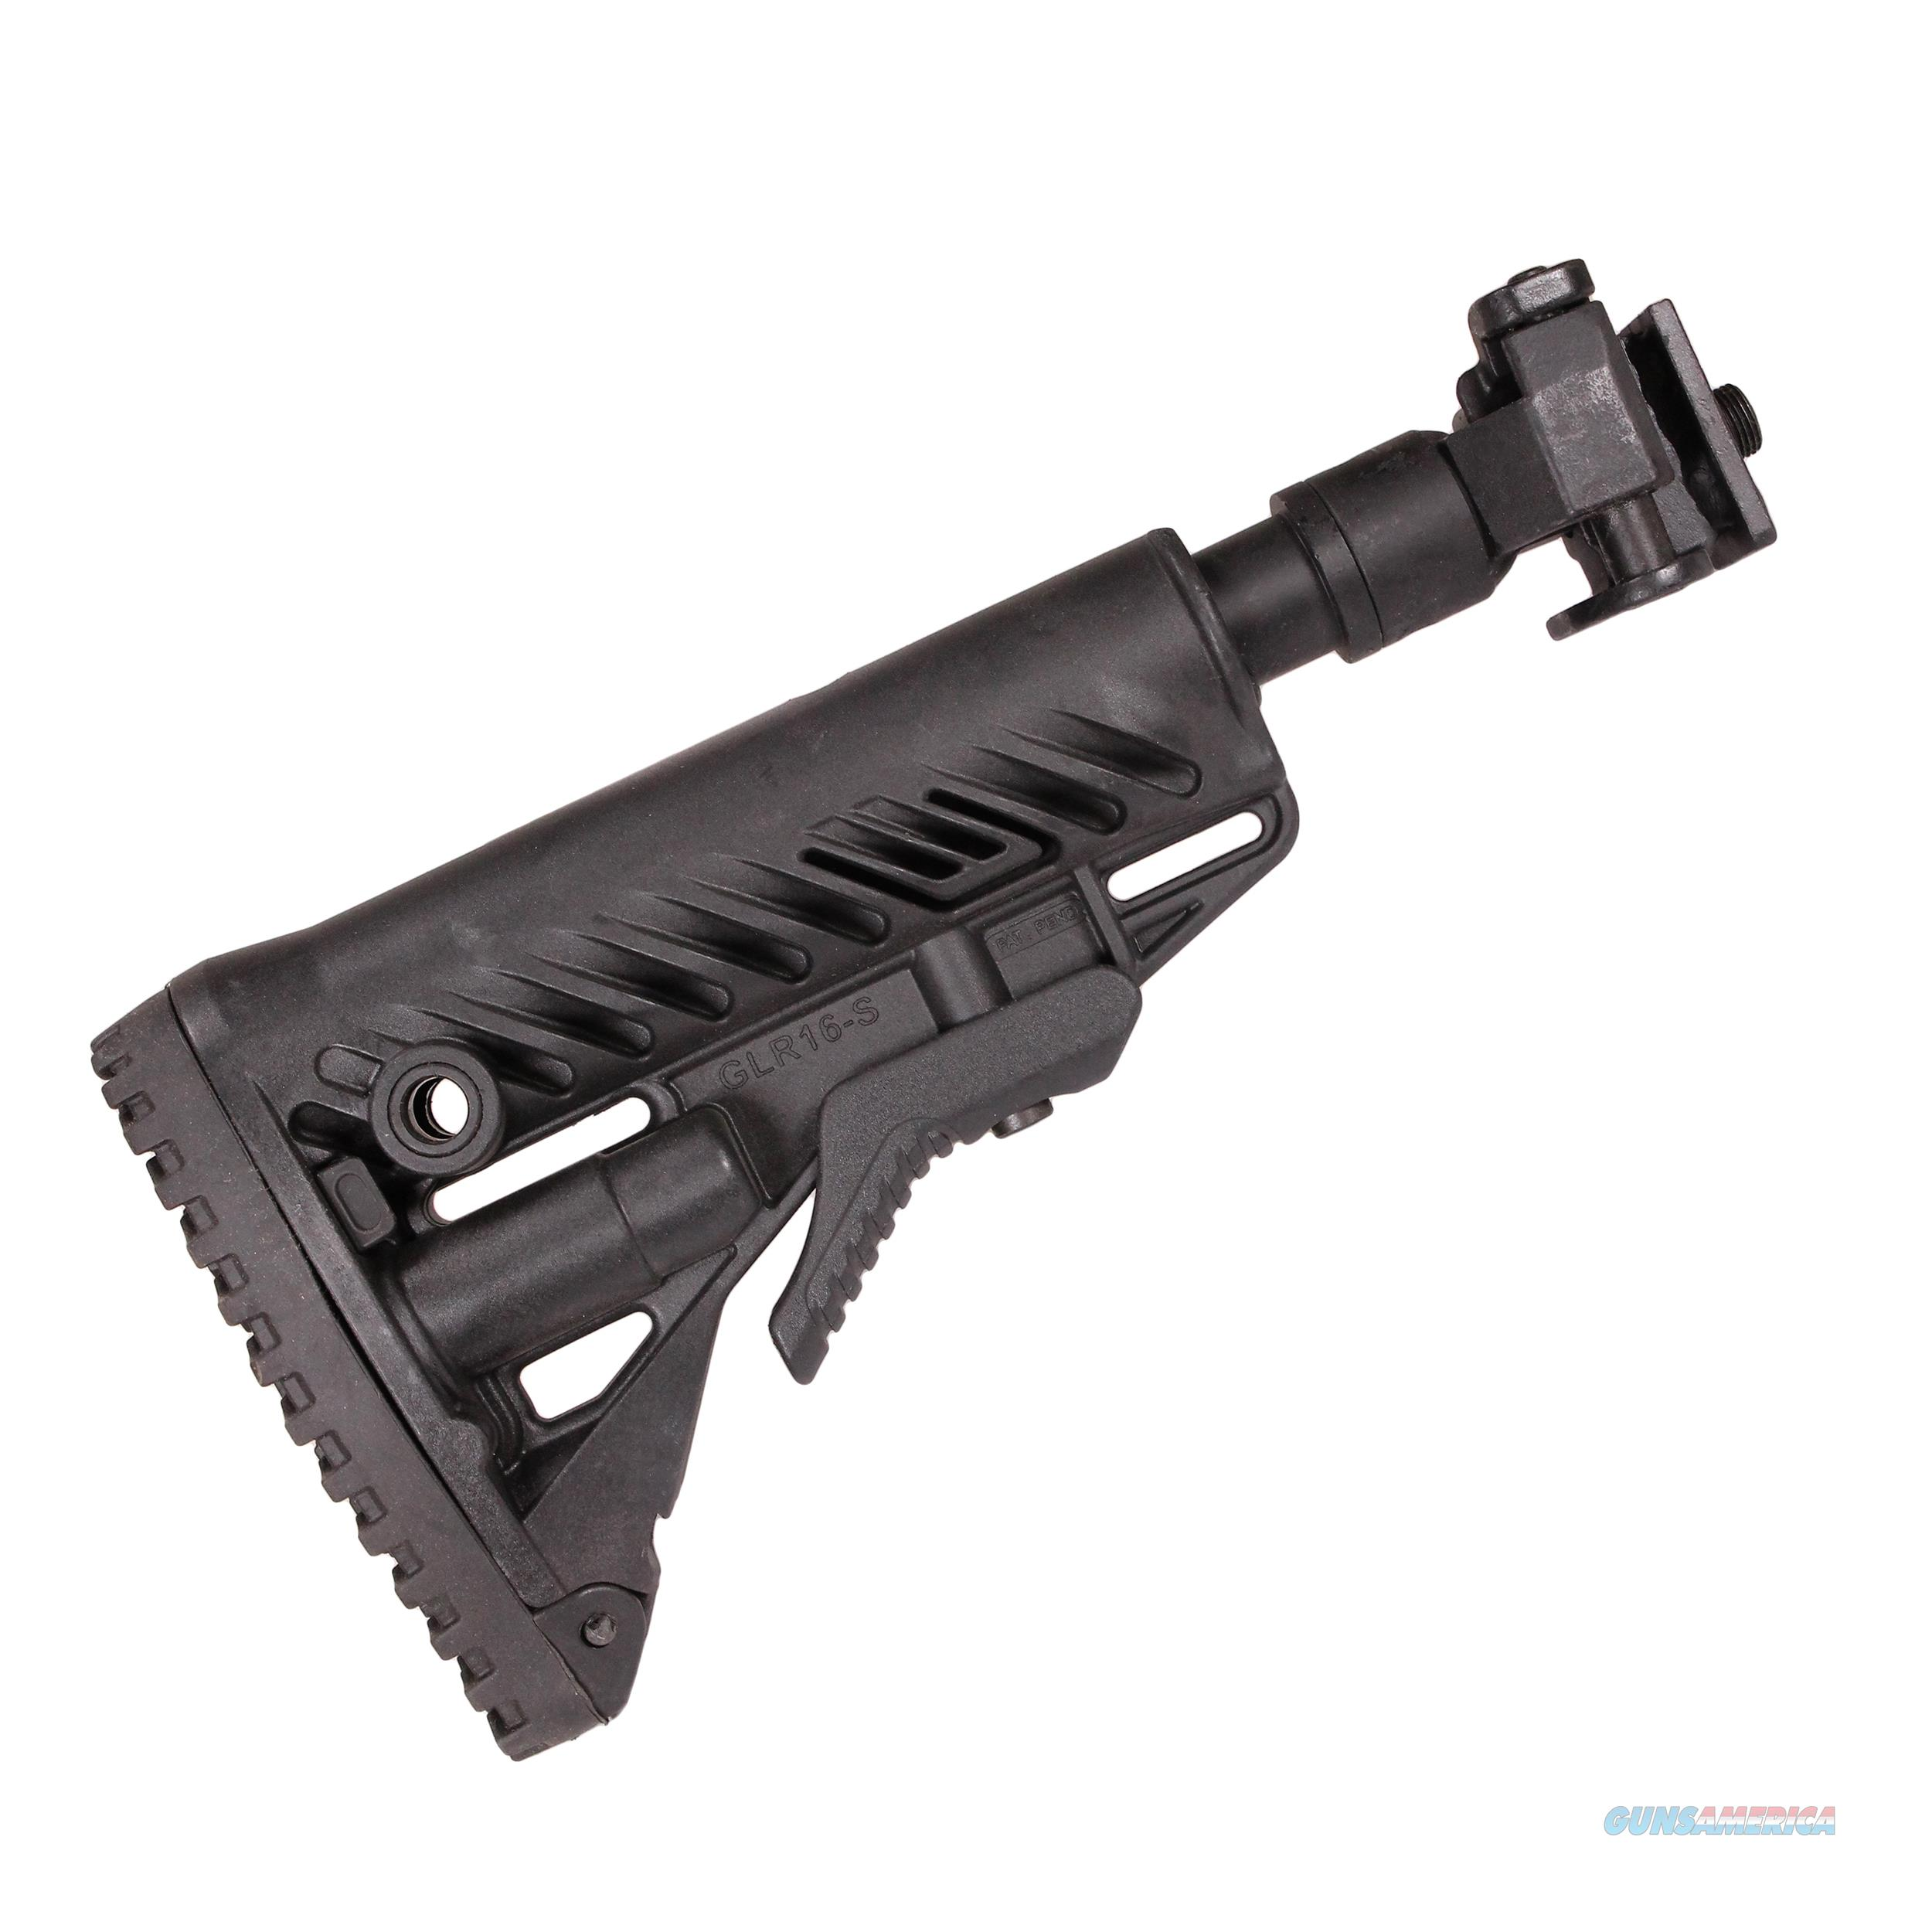 Mako Group Galil Style Recoil Compensating Folding Collapsible Buttstock System M4VZ SB-B  Non-Guns > Gunstocks, Grips & Wood